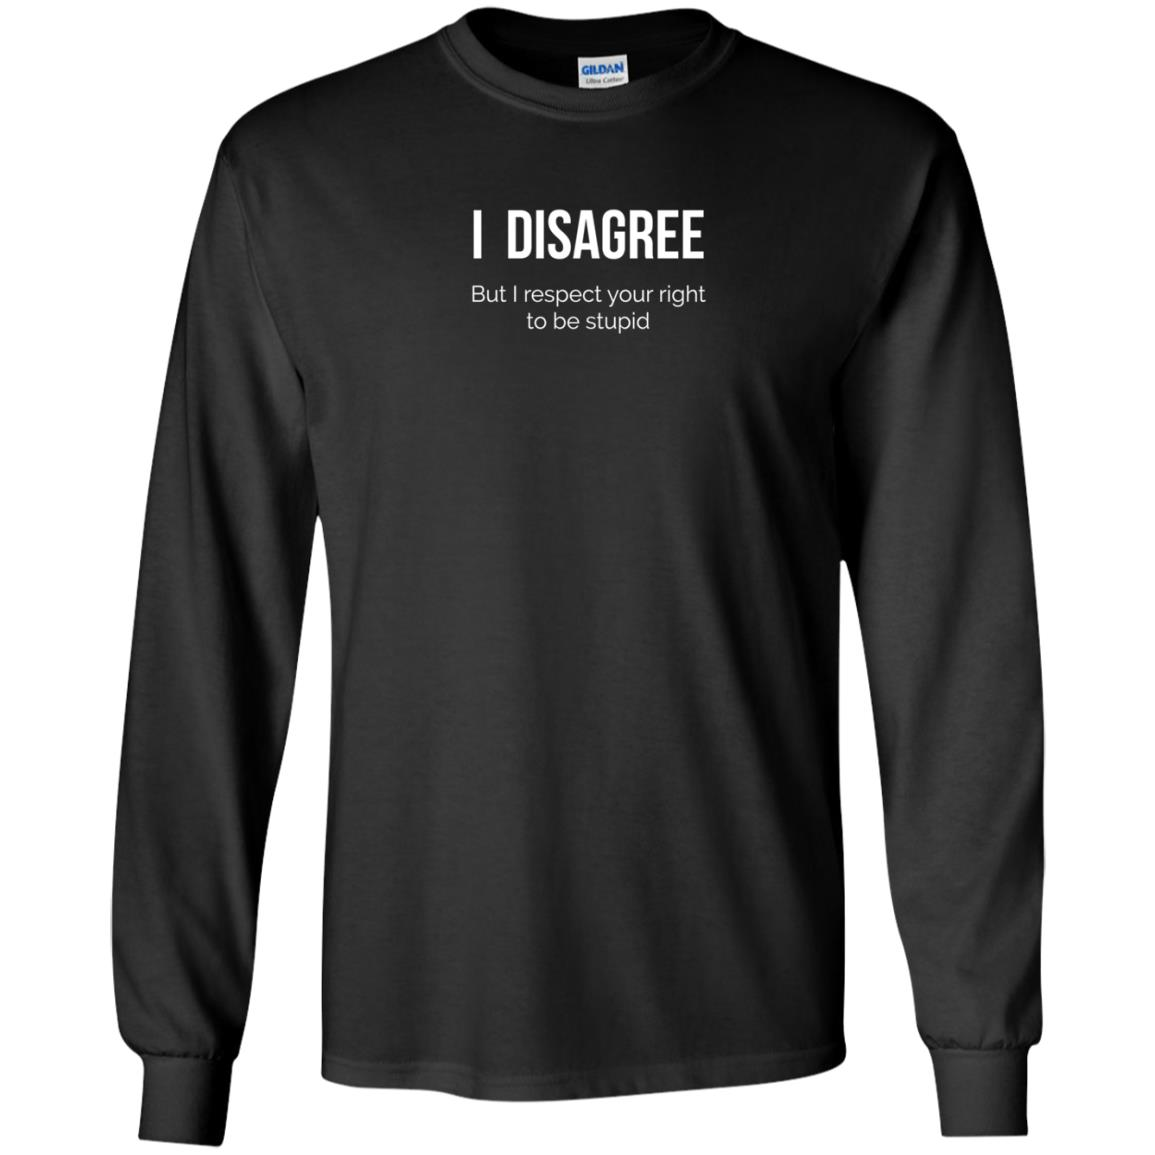 image 2205 - I Disagree But I Respect Your Right To Be Stupid shirt